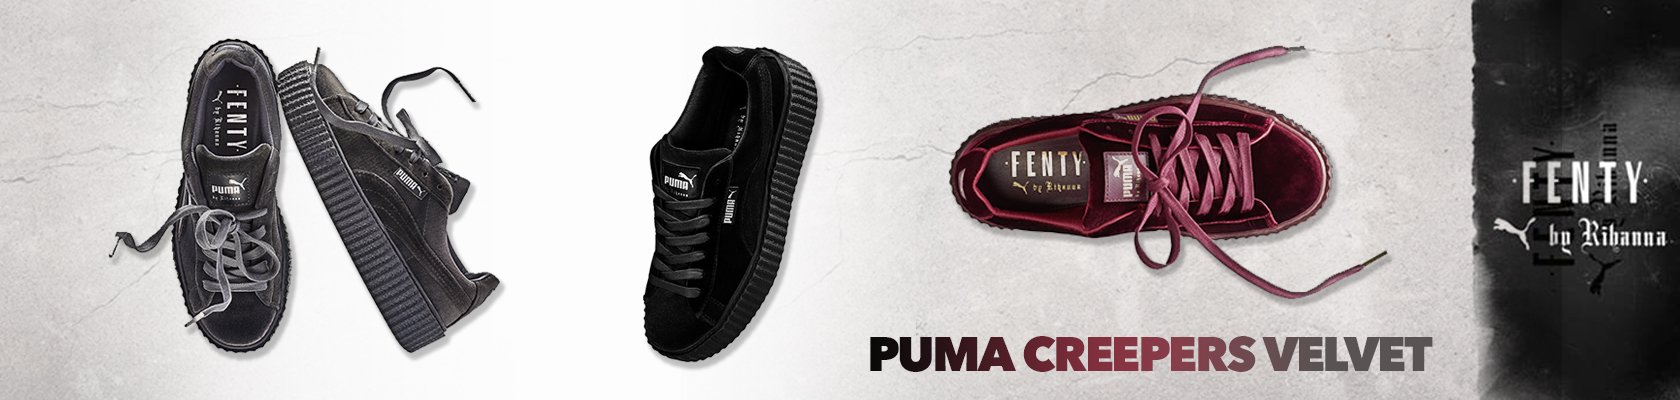 slider-puma-creepers